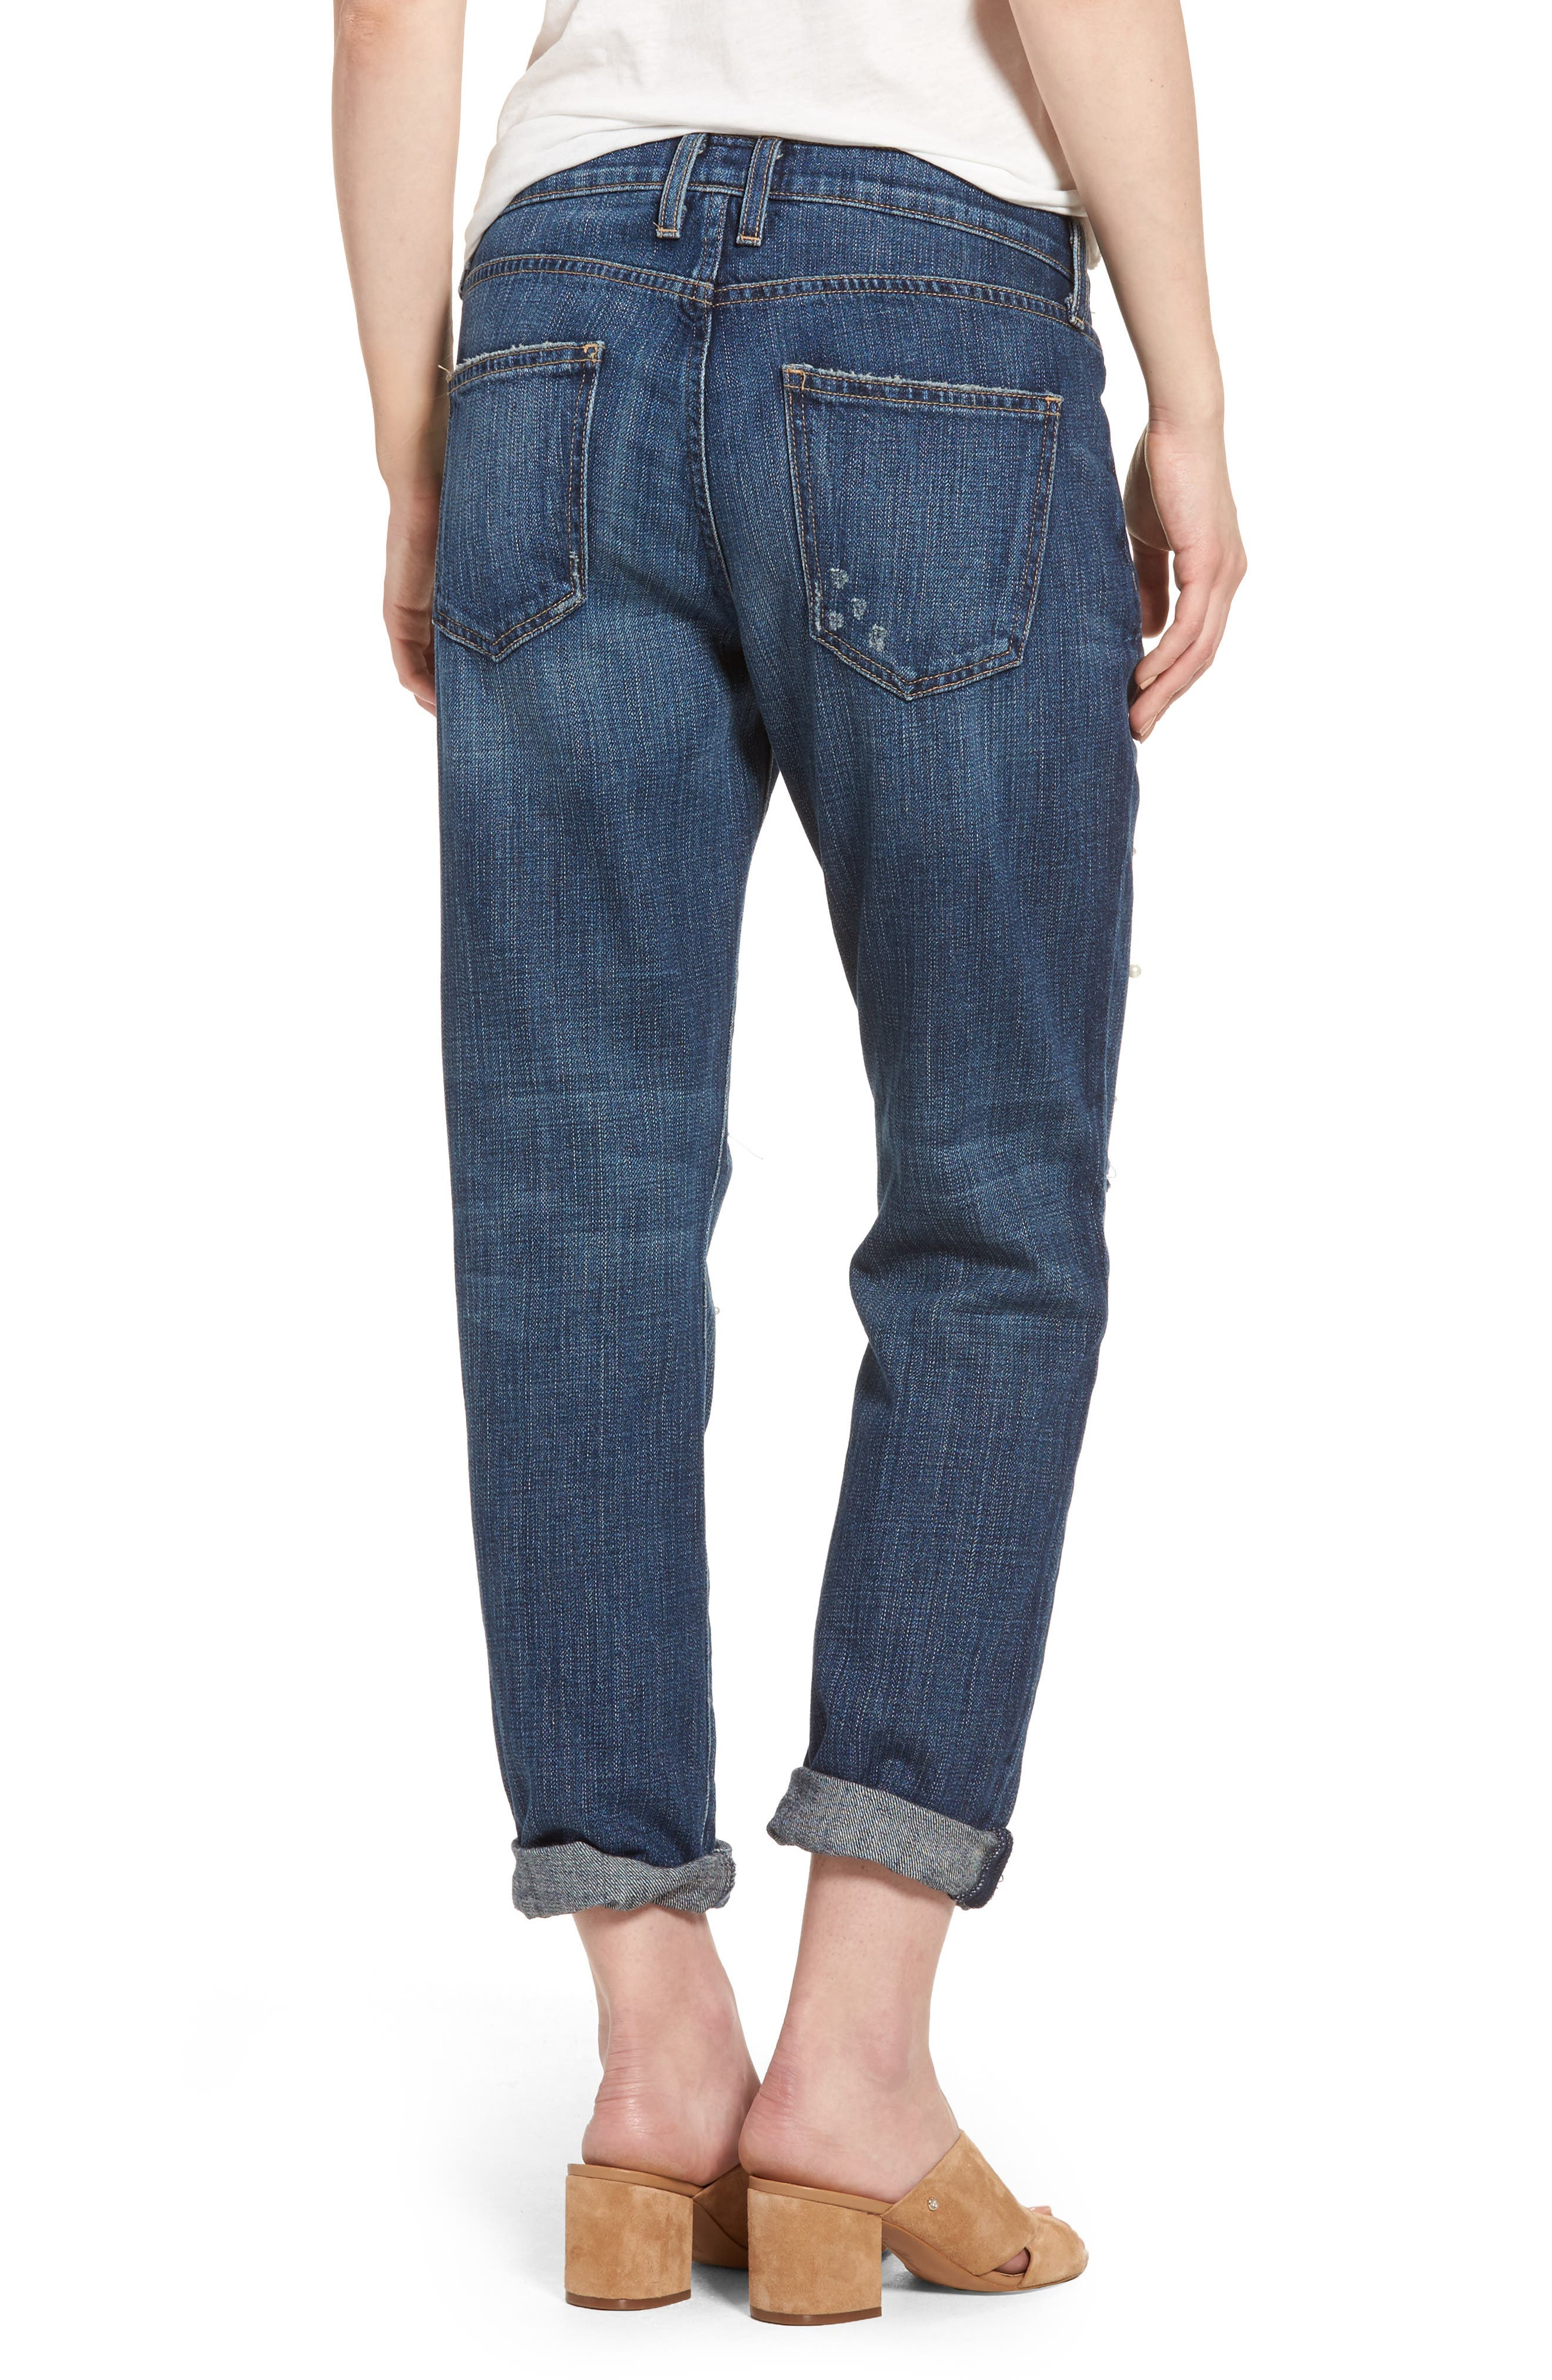 Alternate Image 2  - Current/Elliott 'The Fling' Boyfriend Jeans (Loved)